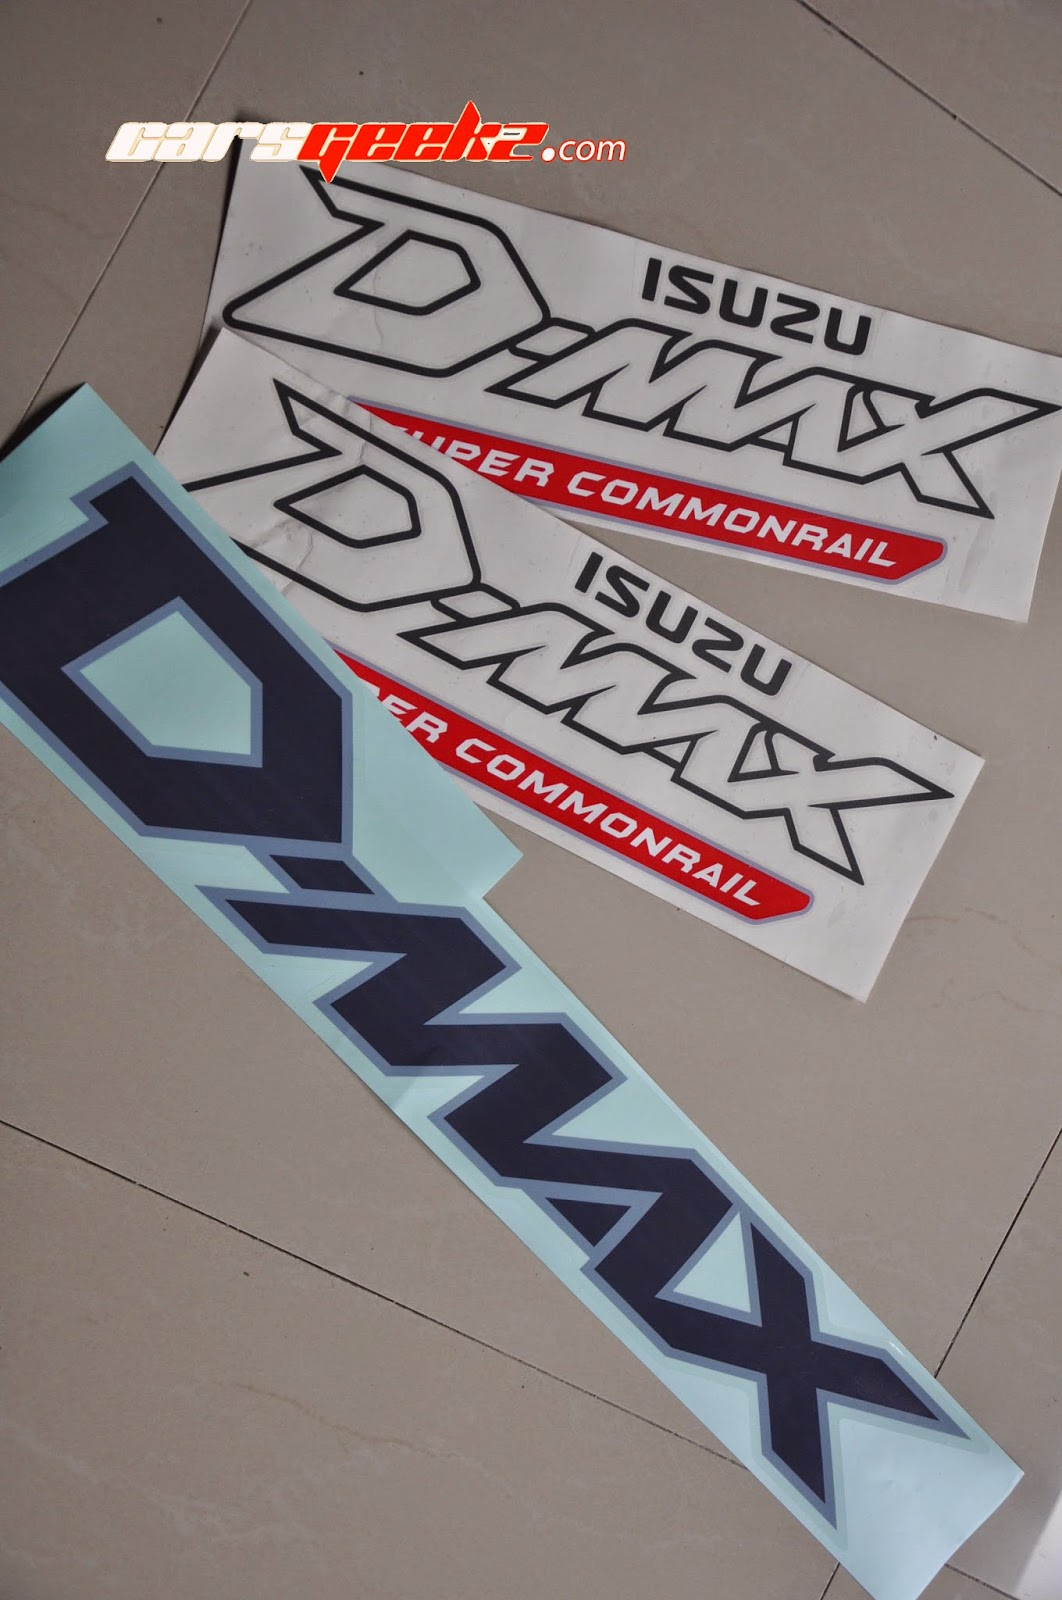 Dmax Isuzu Super Commonraill sticker OEM vinyl